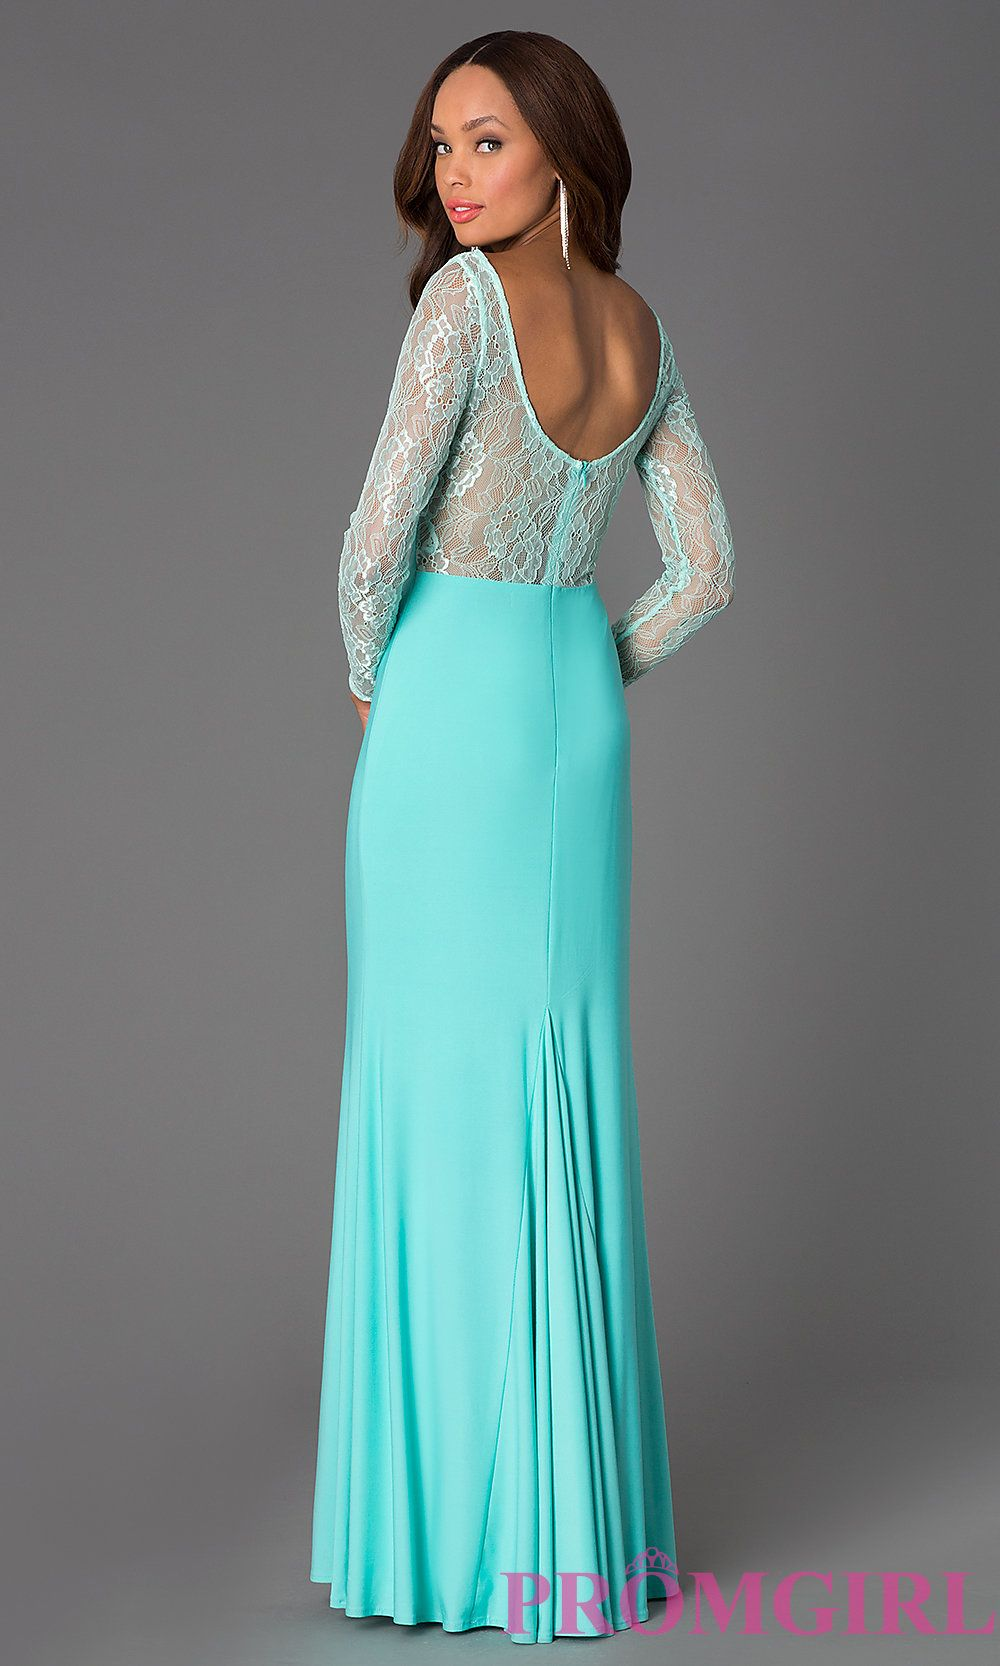 Prom dresses plus size dresses prom shoes floor length prom dress